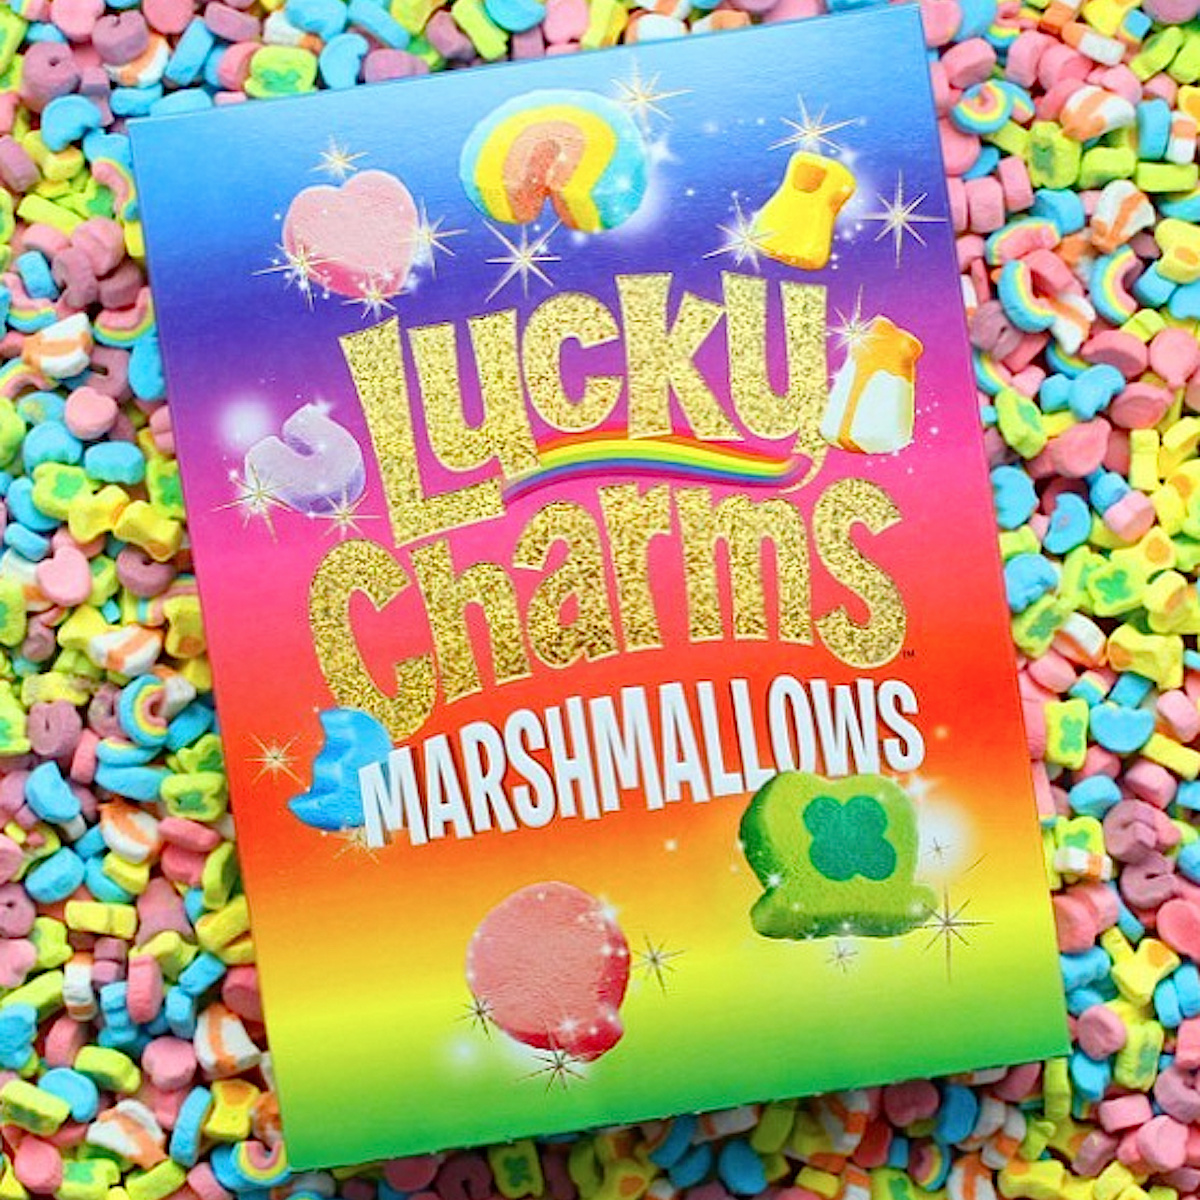 Houston, Lucky Charms cereal, June 2017